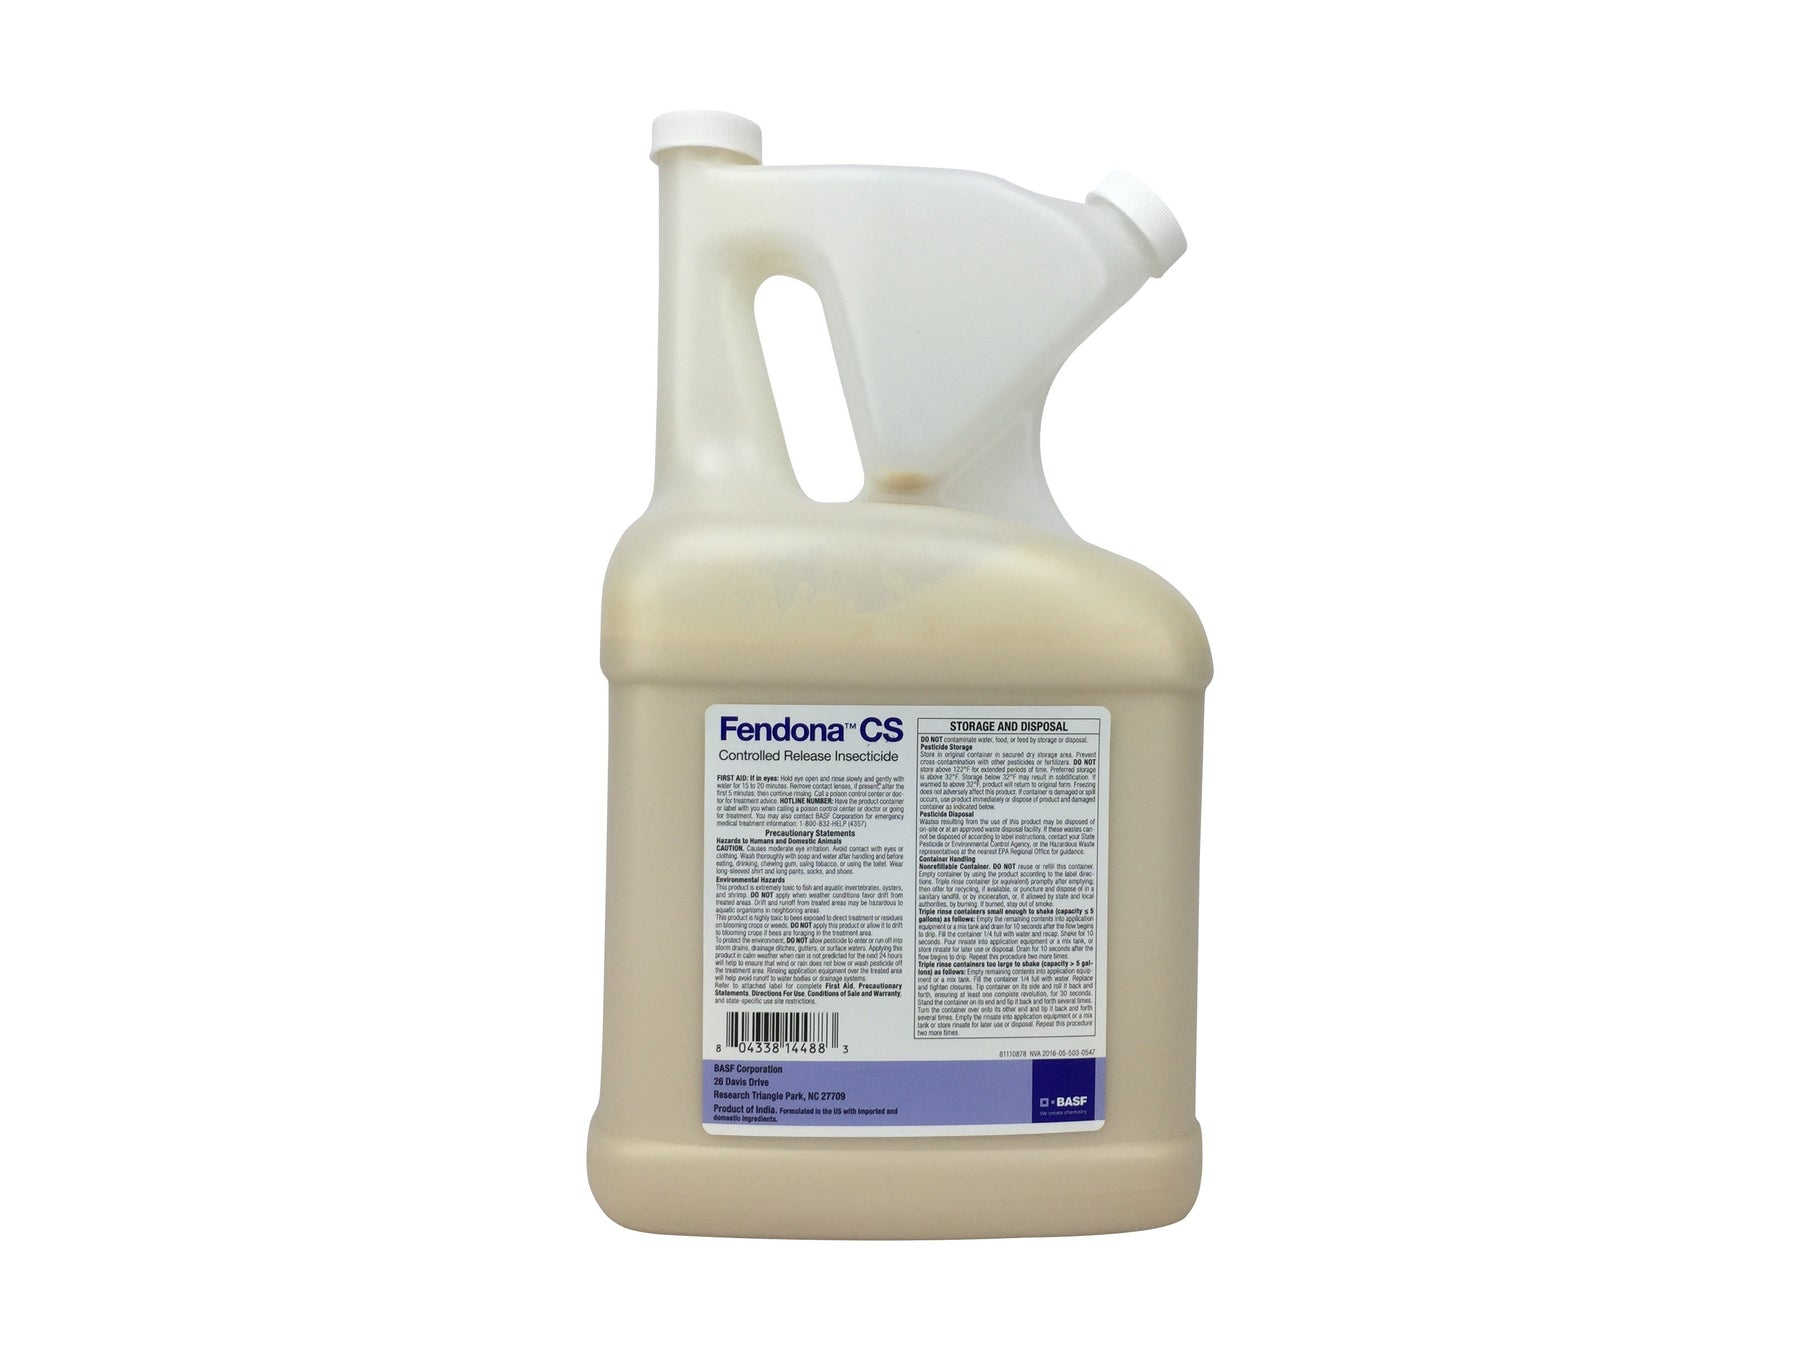 Fendona CS Controlled Release Insecticide